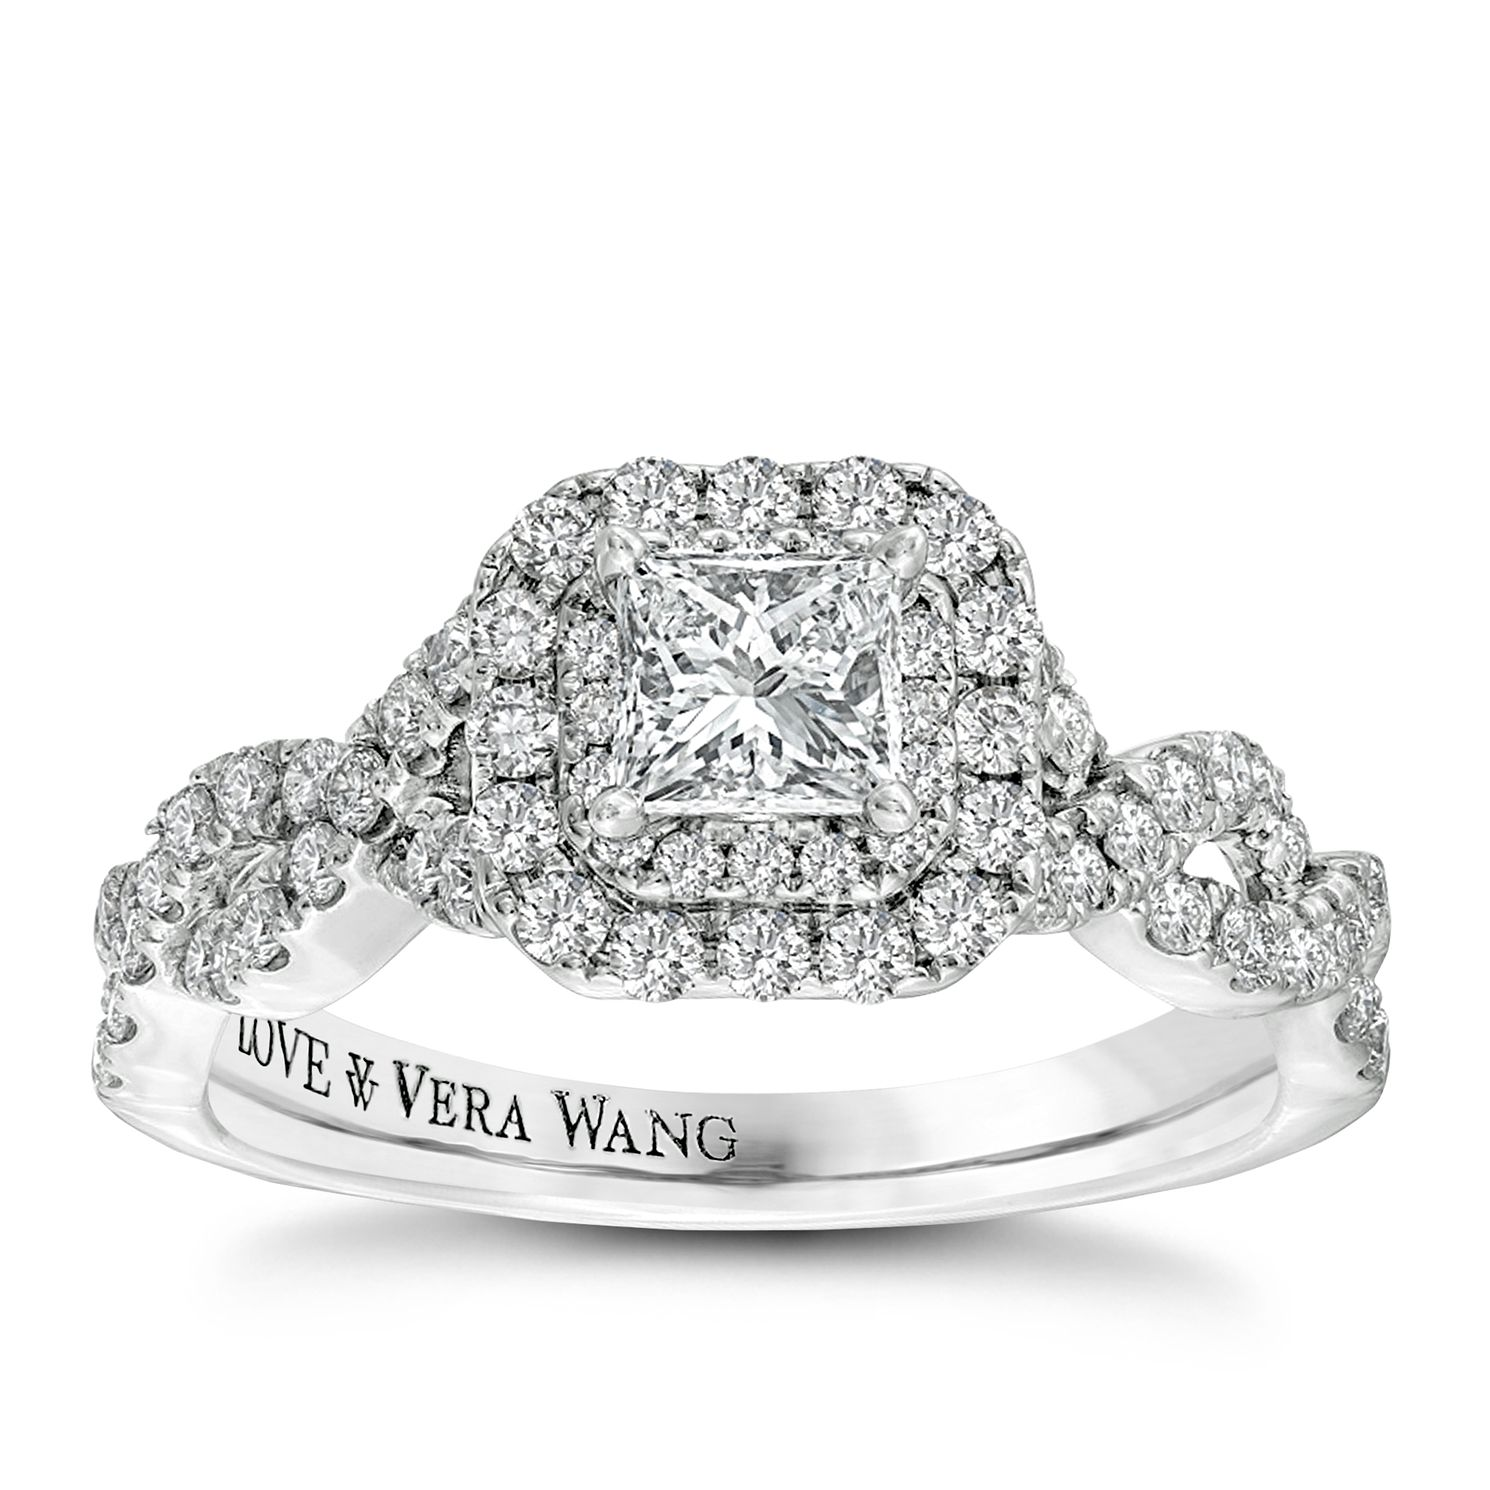 pin the rings with engagement vera love wang to my represent everlasting on sapphires ring insides